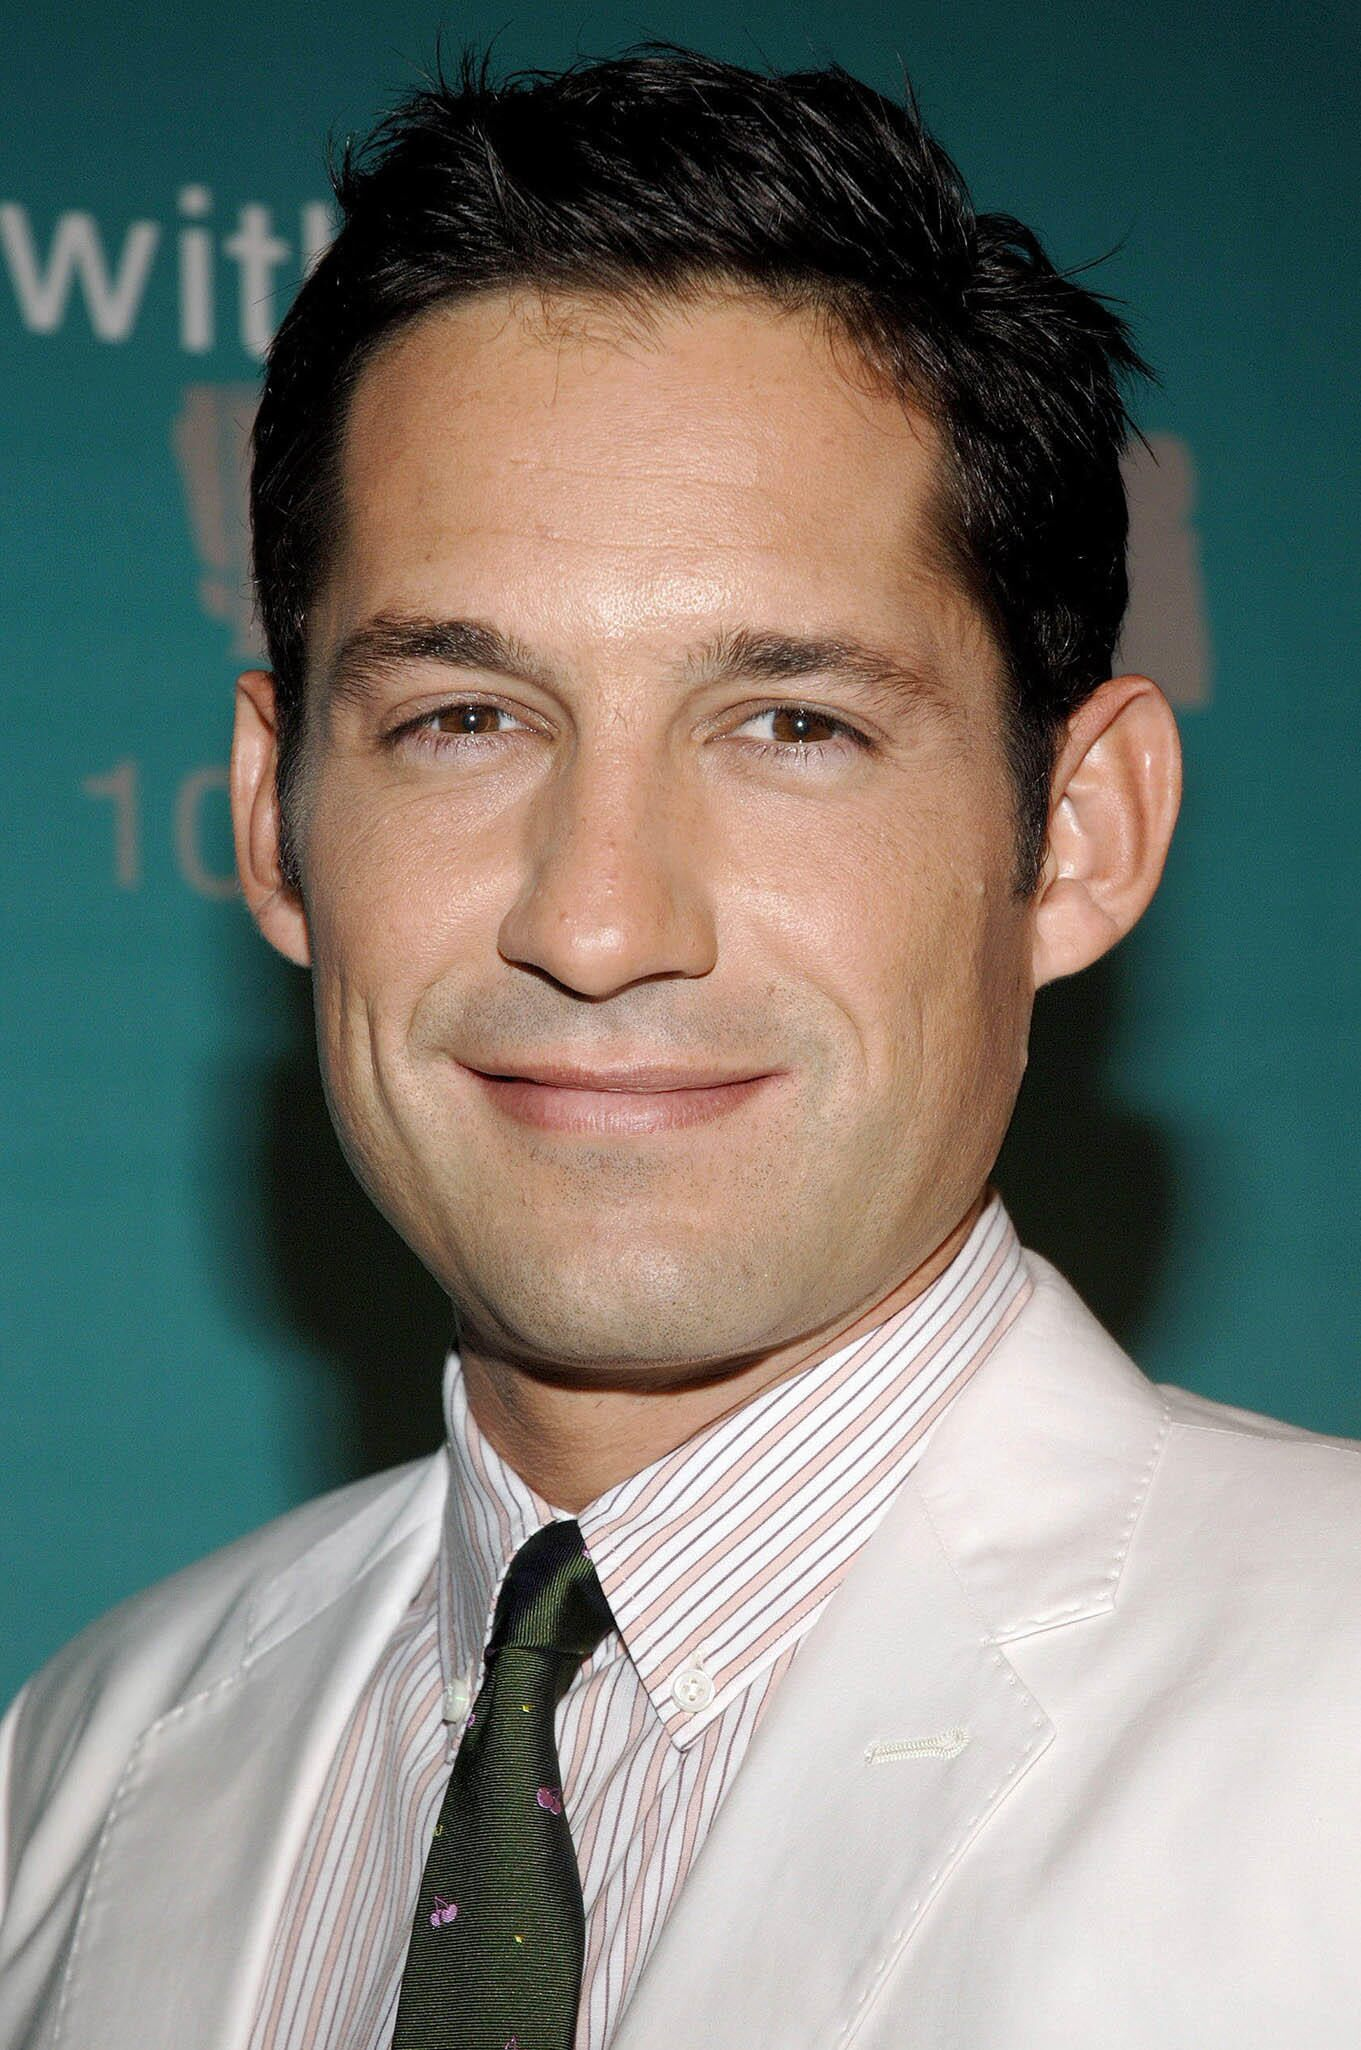 How tall is Enrique Murciano?